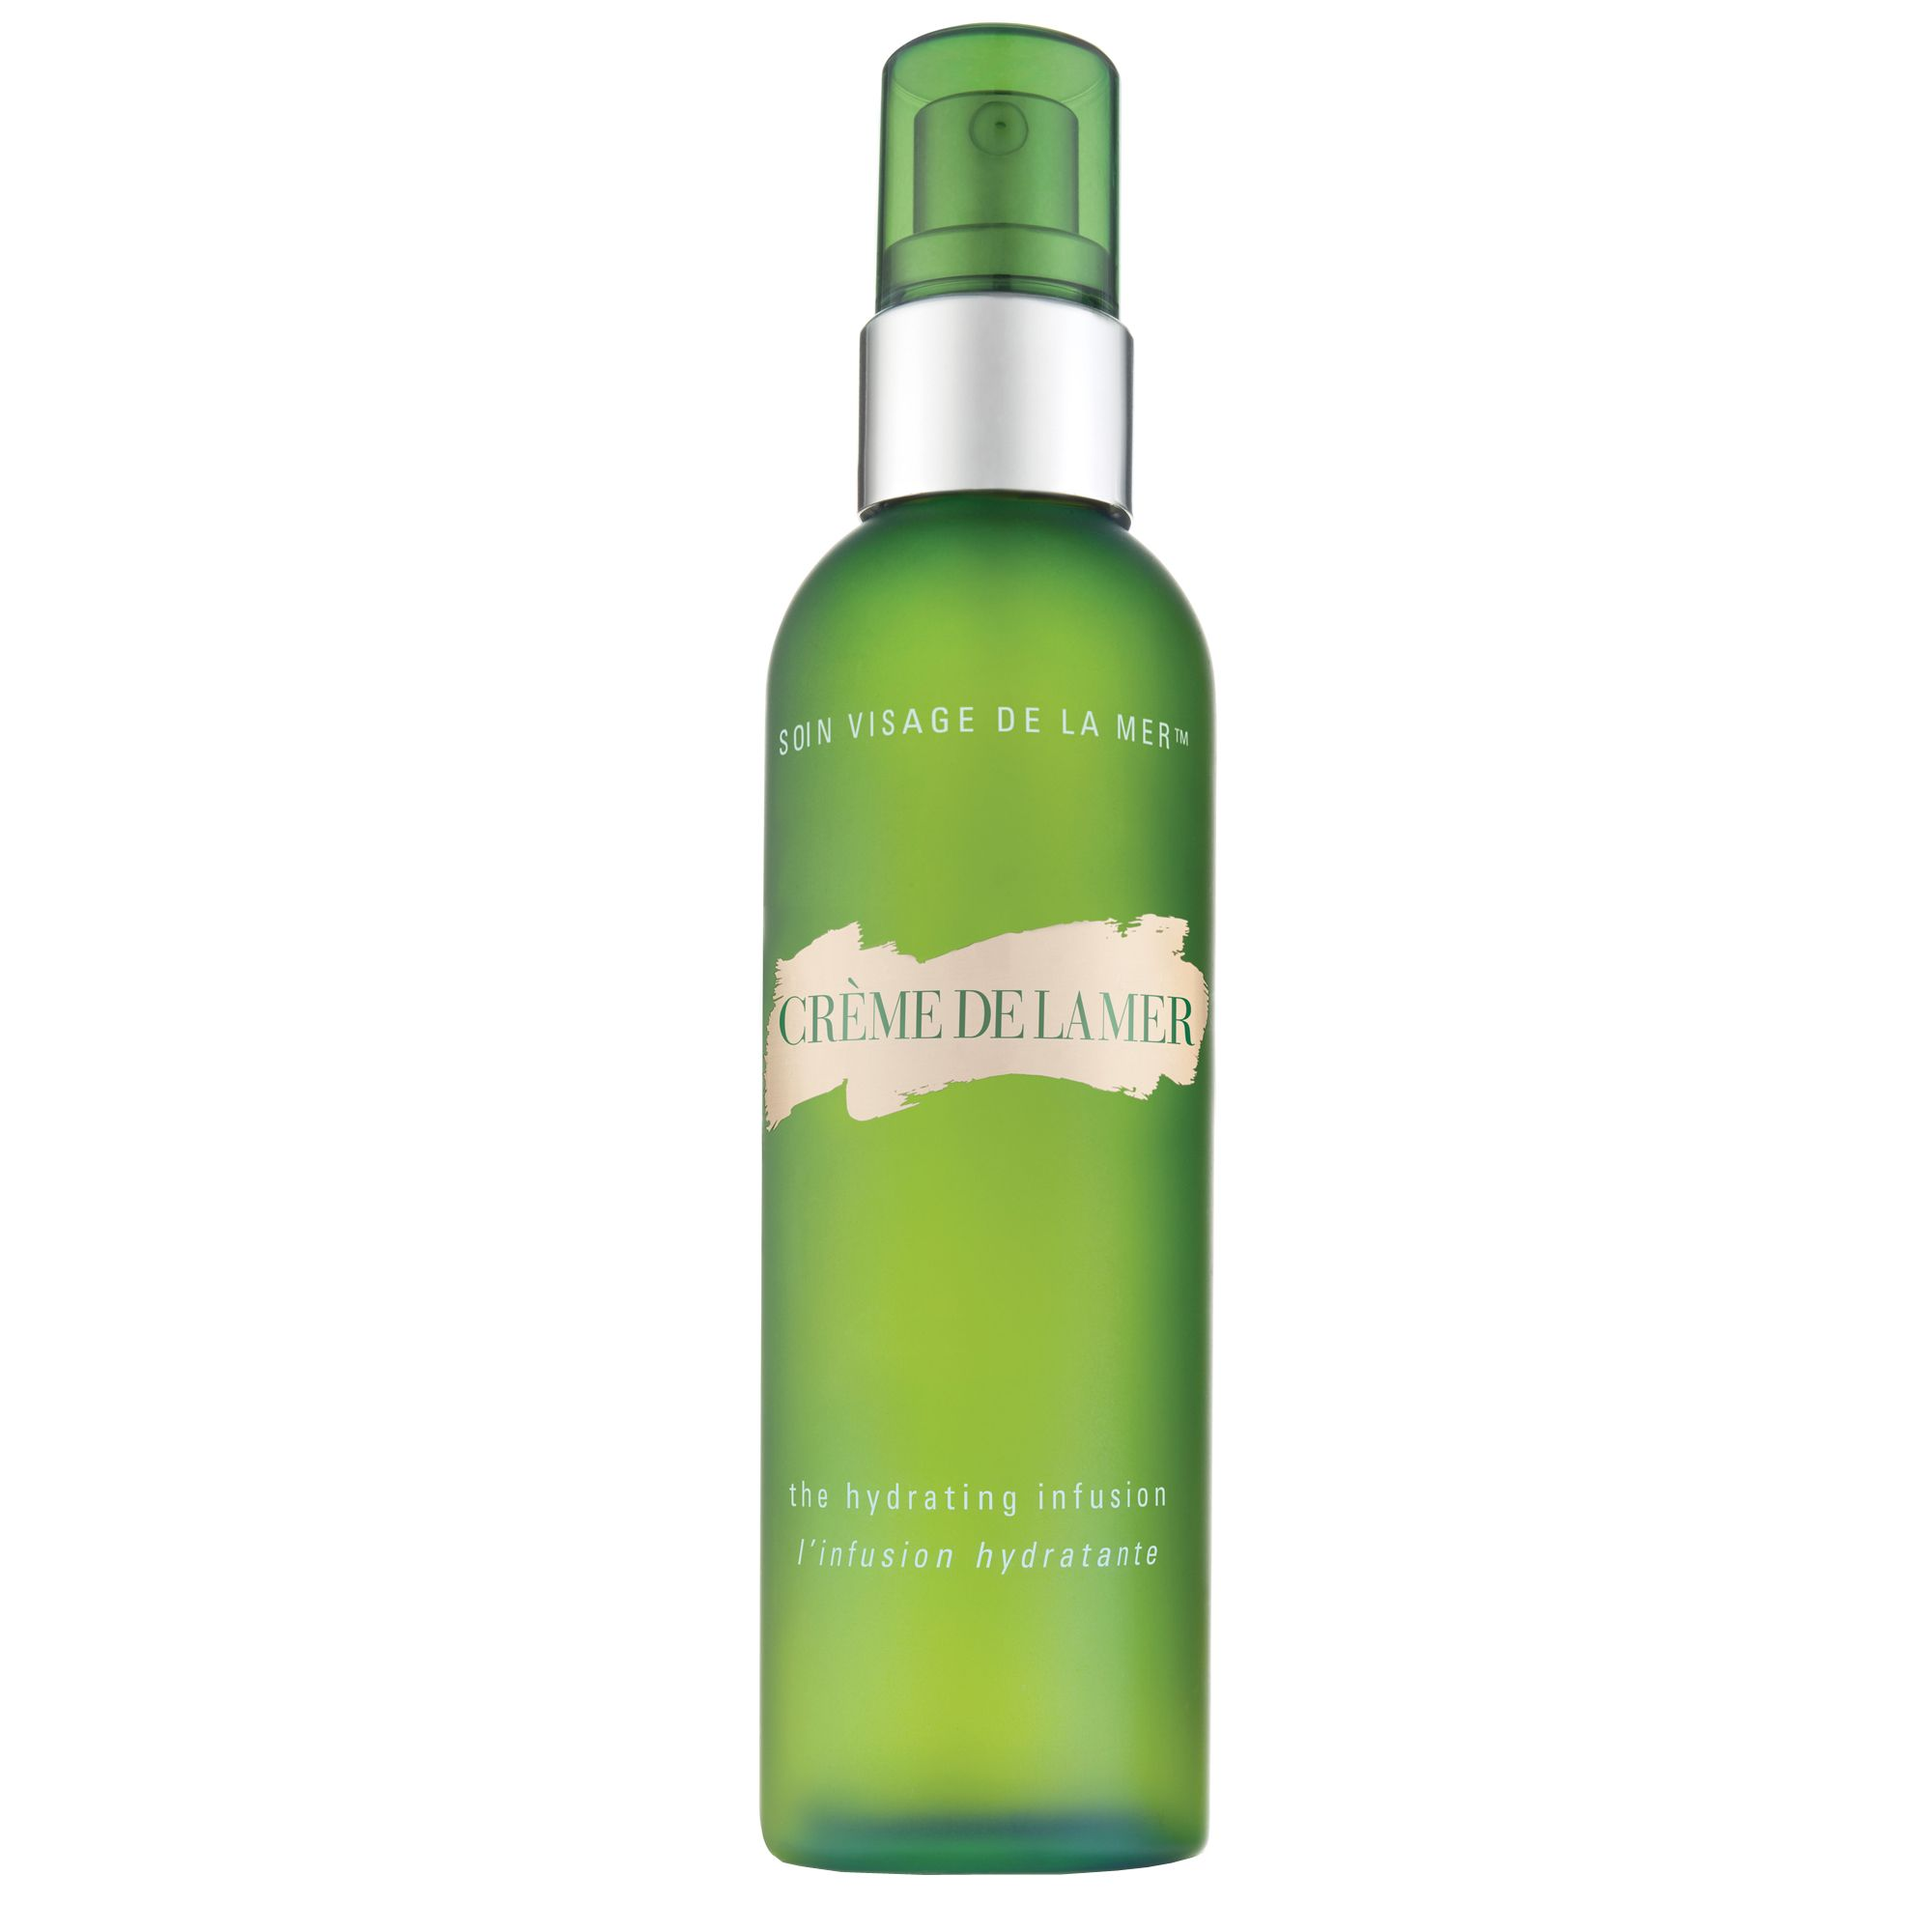 related product products/images/LaMer-TheHydratingInfusion